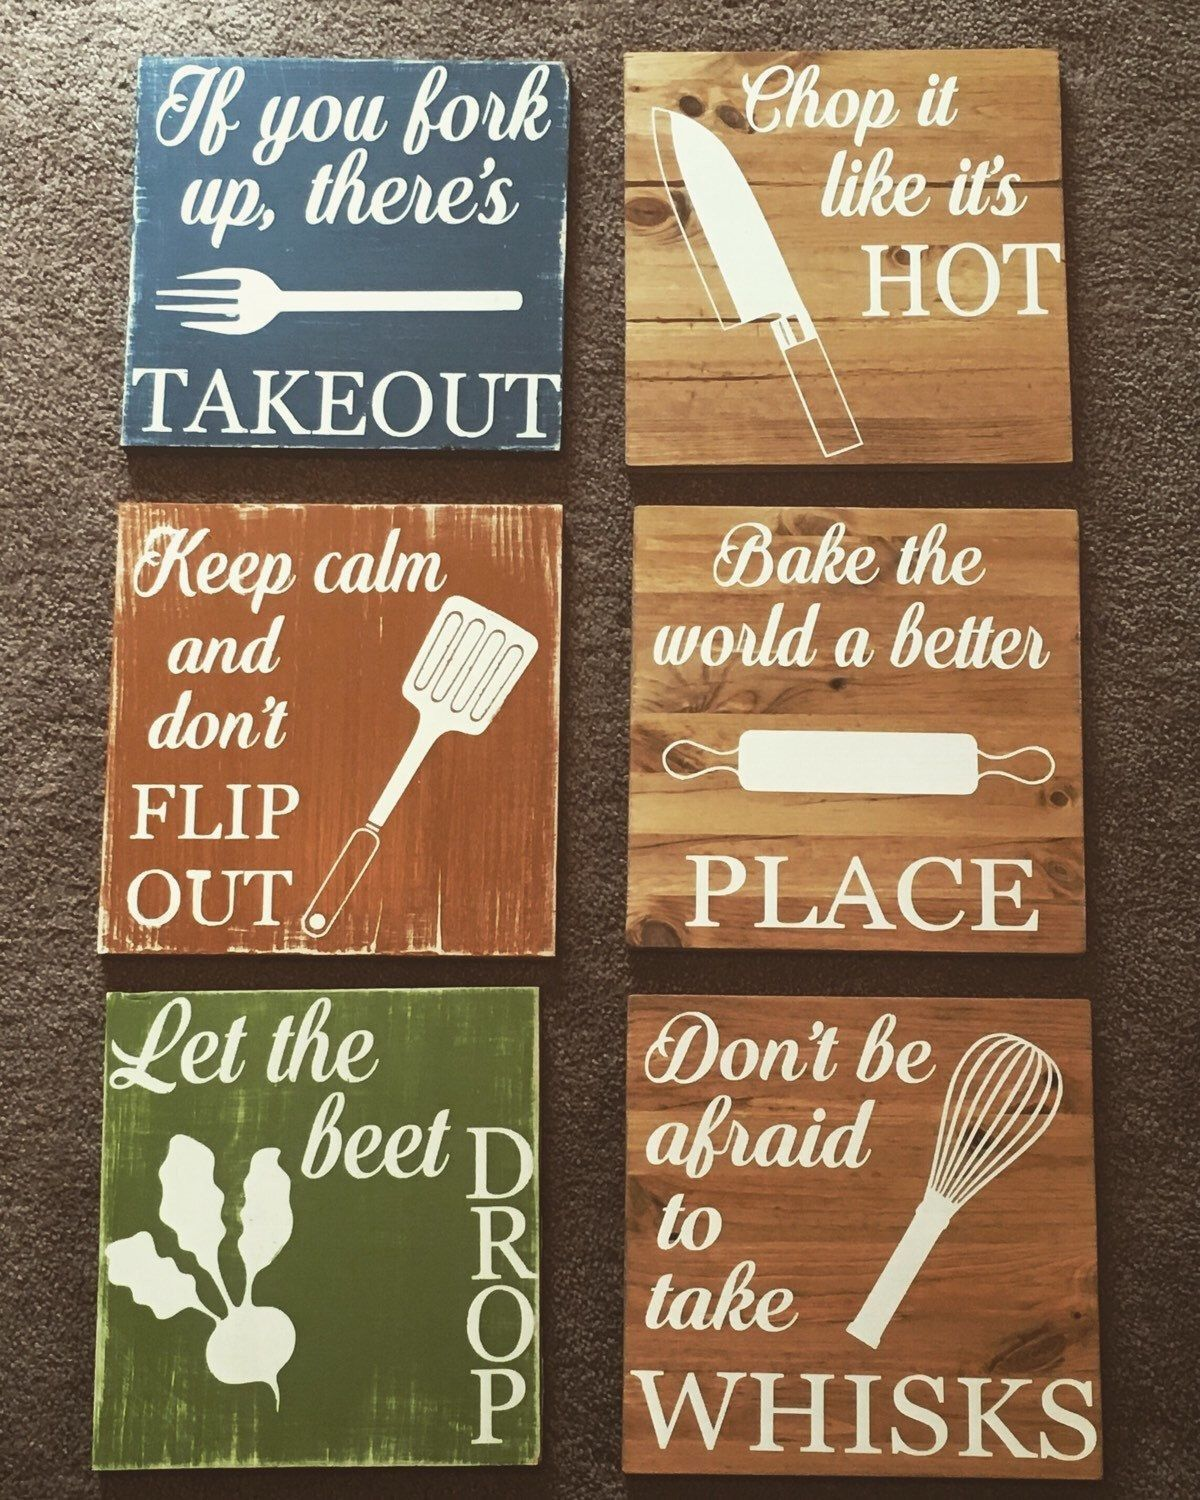 15 Crazy And Funny Quote Decor Ideas To Bring Laughter Into Your Home Rustic Kitchen Decor Funny Kitchen Signs Kitchen Humor